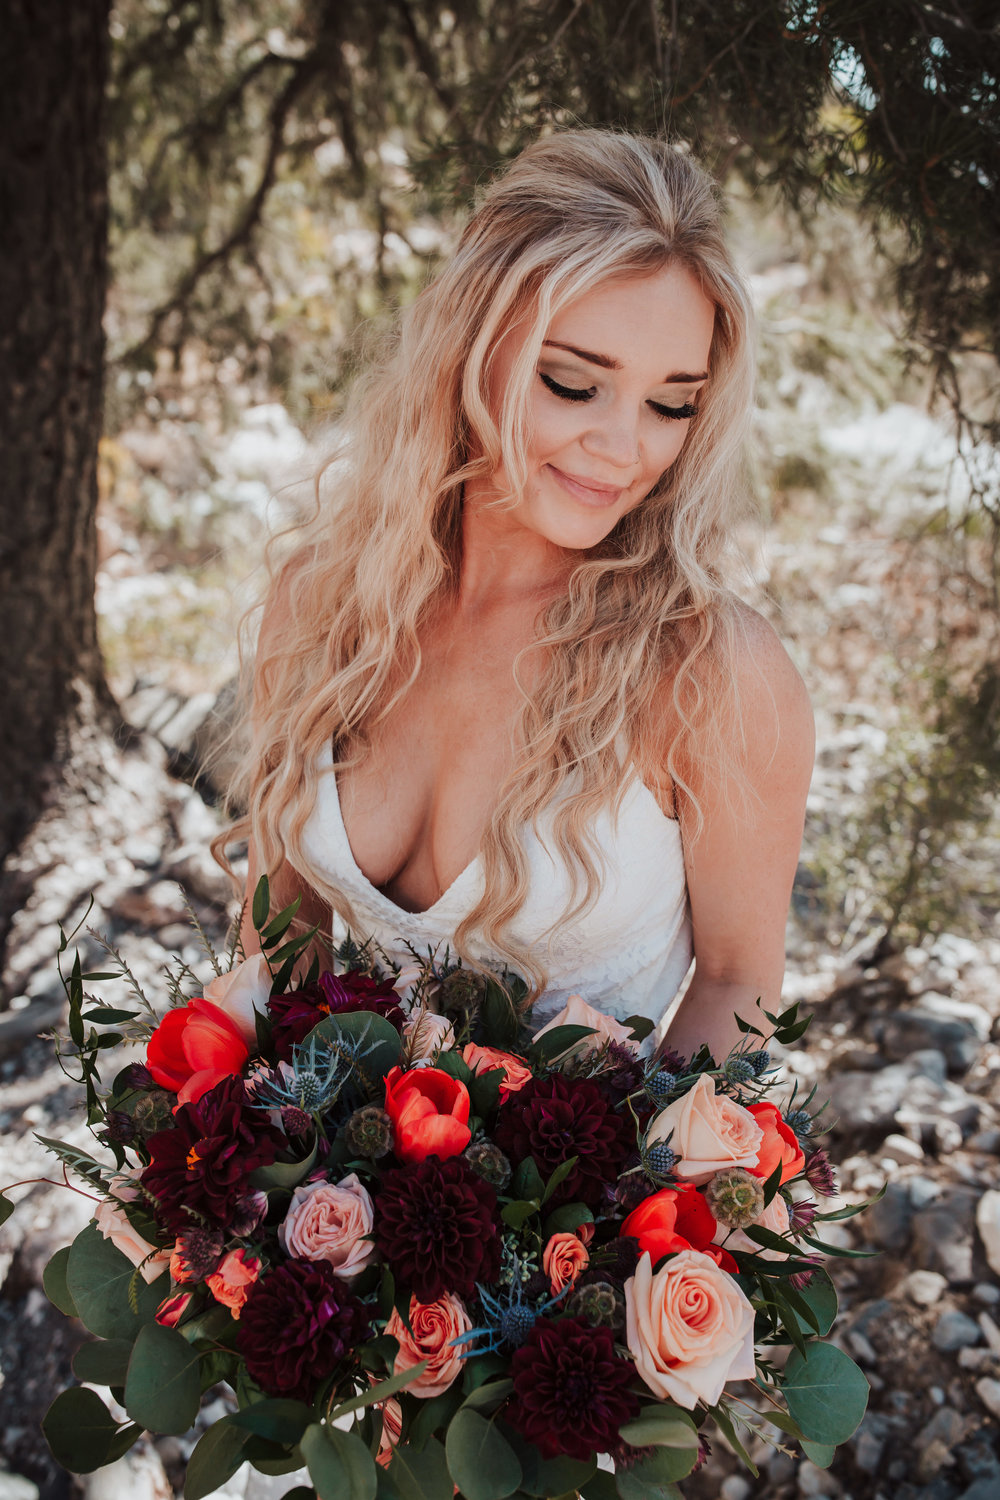 Rustic Bloom Photography | Bridal Bouquet Inspiration